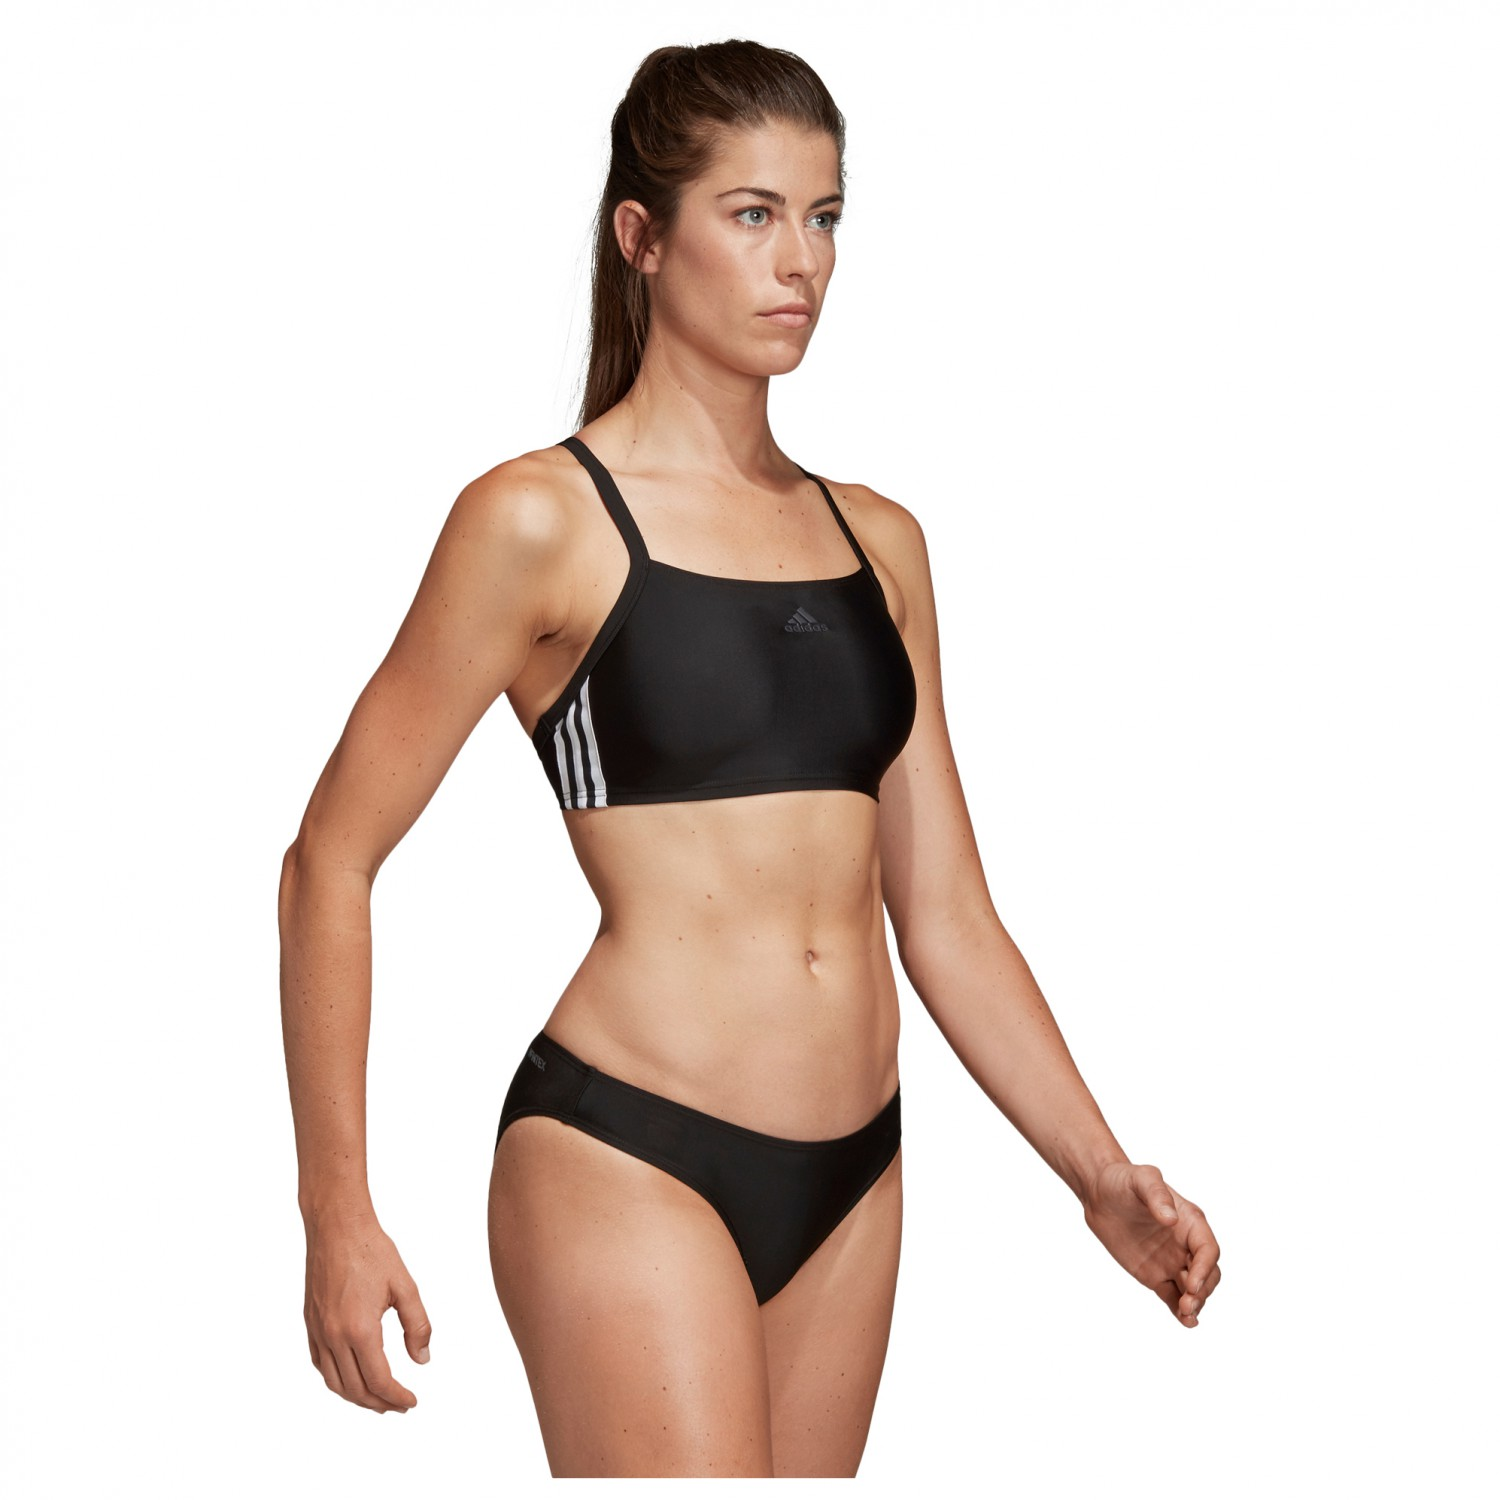 adidas Women's Performance Fit 2 Piece 3 Streifen II Bikini Black | 34 (EU)